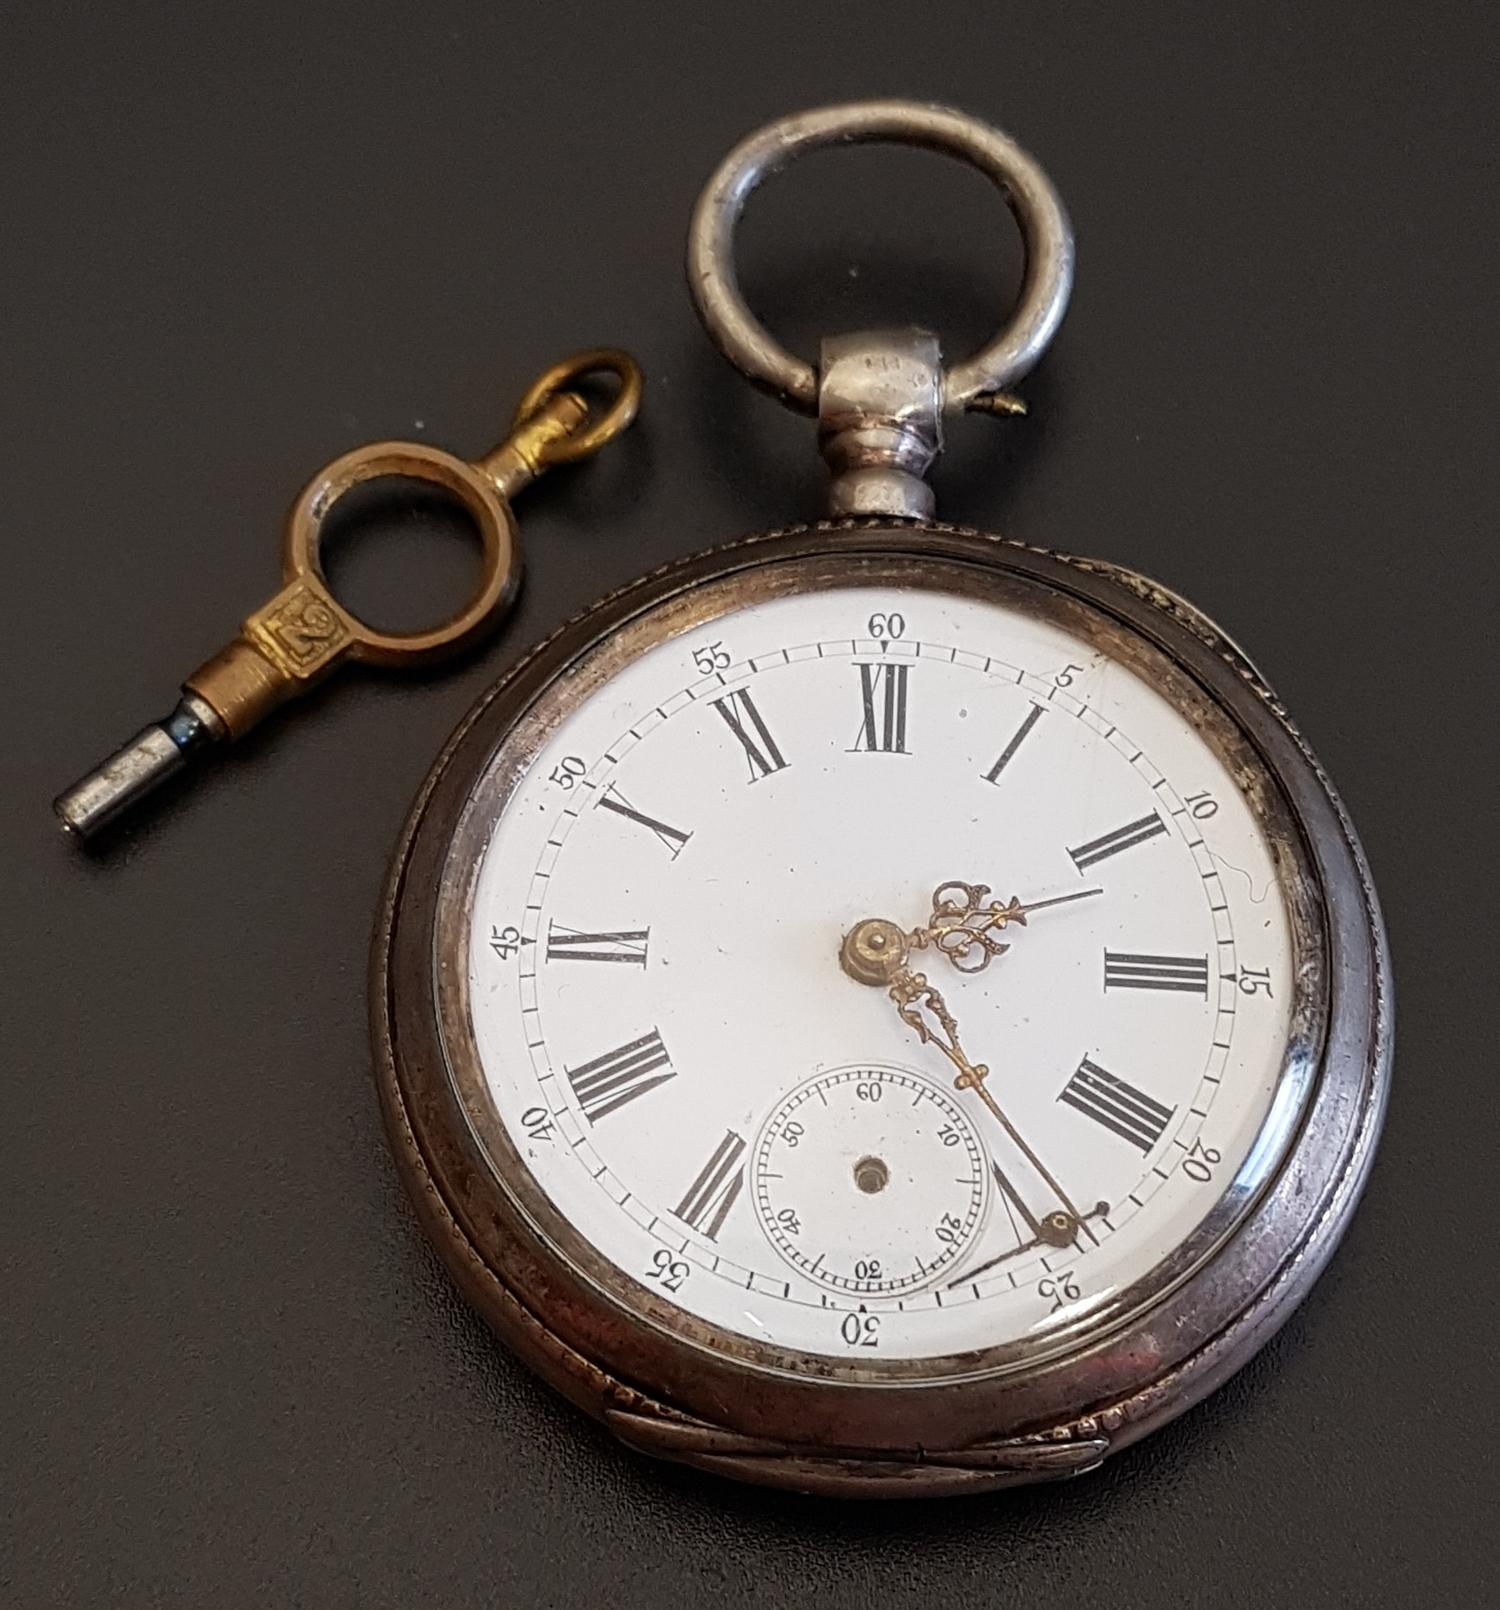 Lot 63 - FRENCH SILVER CASED POCKET WATCH the white enamel dial with Roman numerals and subsidiary seconds